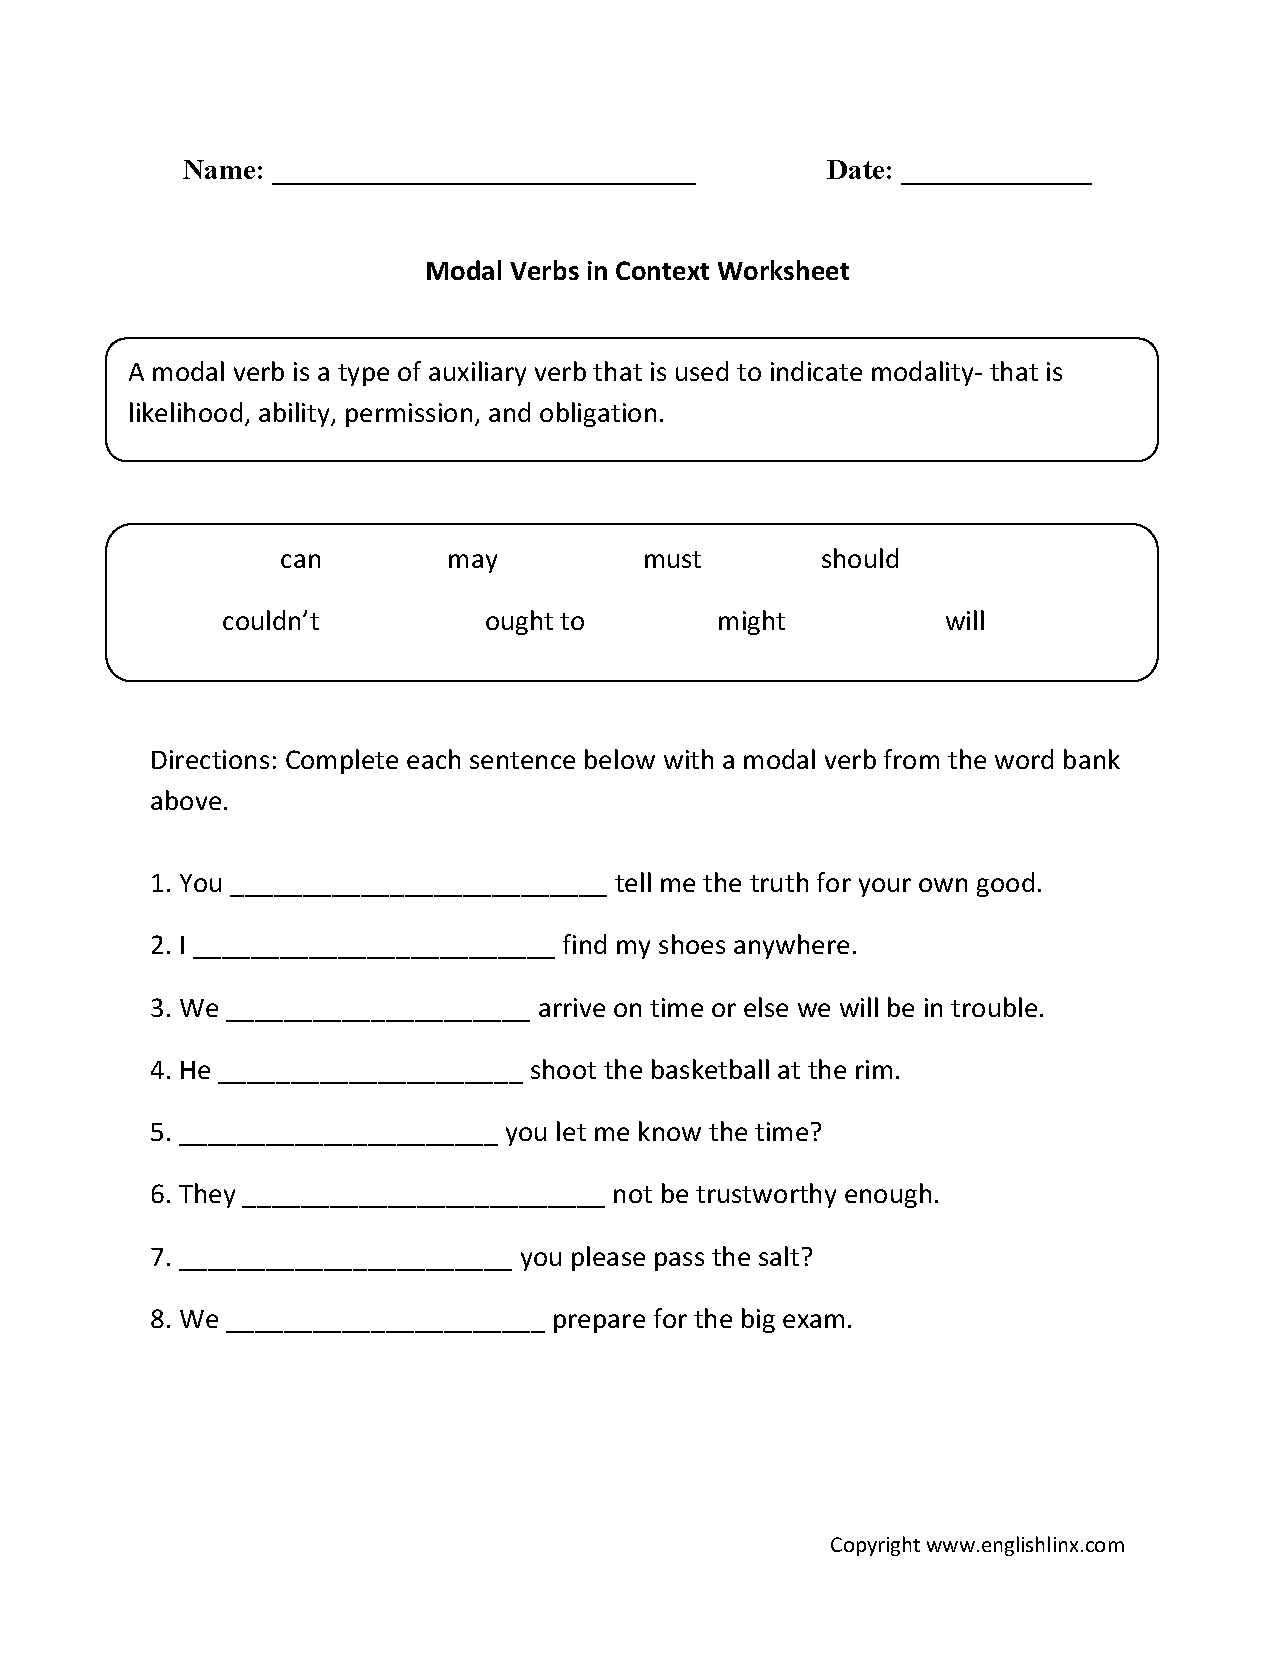 Aldiablosus  Unique Worksheet For Verbs  Coffemix With Hot Englishlinxcom  Verbs Worksheets With Endearing Conflict Worksheet Also Verbs Like Gustar Worksheet In Addition Cat Dissection Worksheet And Letter A Tracing Worksheets As Well As Adding And Subtracting Mixed Numbers With Like Denominators Worksheet Additionally Math Geometry Worksheets From Coffemixcom With Aldiablosus  Hot Worksheet For Verbs  Coffemix With Endearing Englishlinxcom  Verbs Worksheets And Unique Conflict Worksheet Also Verbs Like Gustar Worksheet In Addition Cat Dissection Worksheet From Coffemixcom